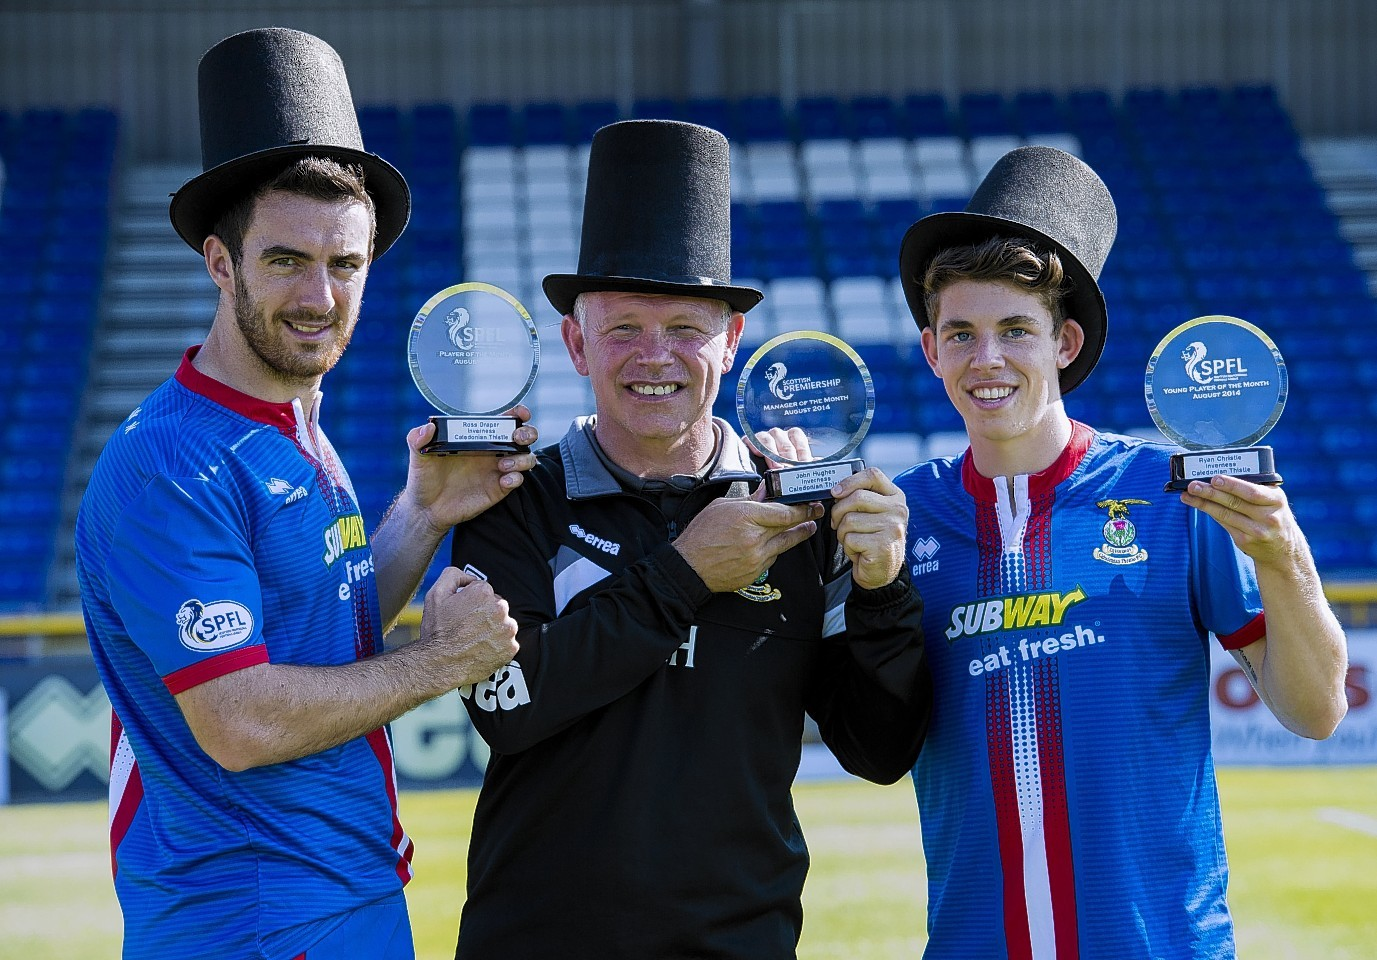 Christie was named young player of the month for August alongside player of the month Ross Draper and manager of the month John Hughes